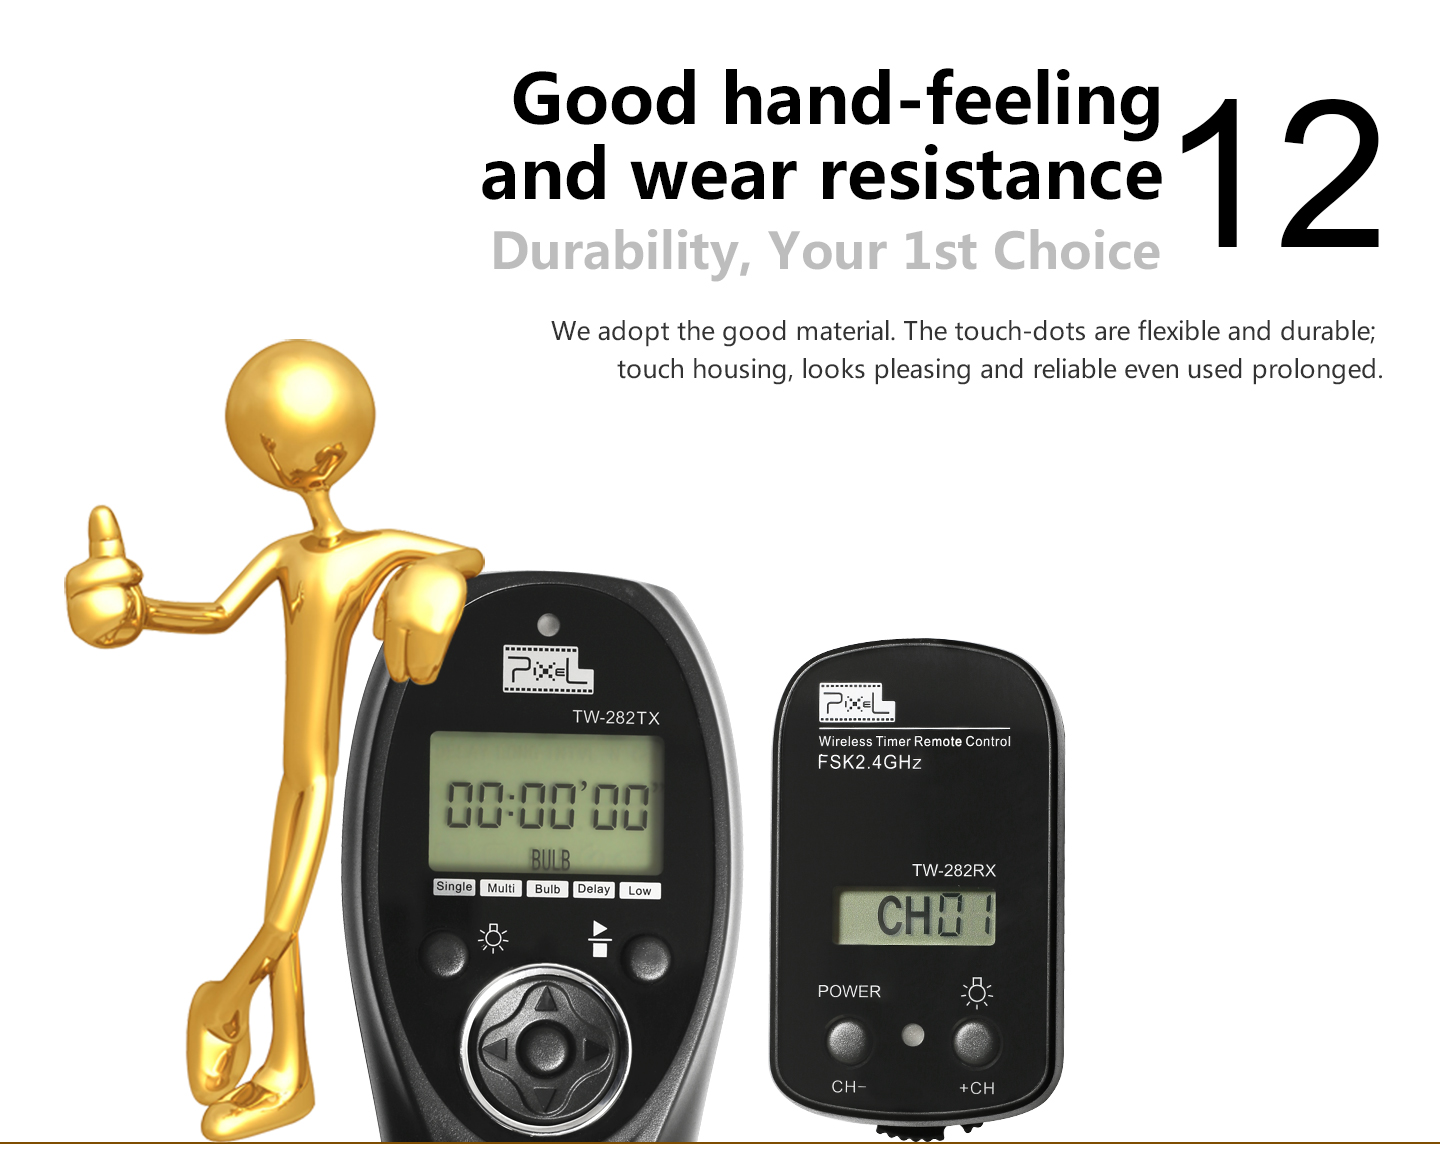 Good hand-feeling and wear resistance